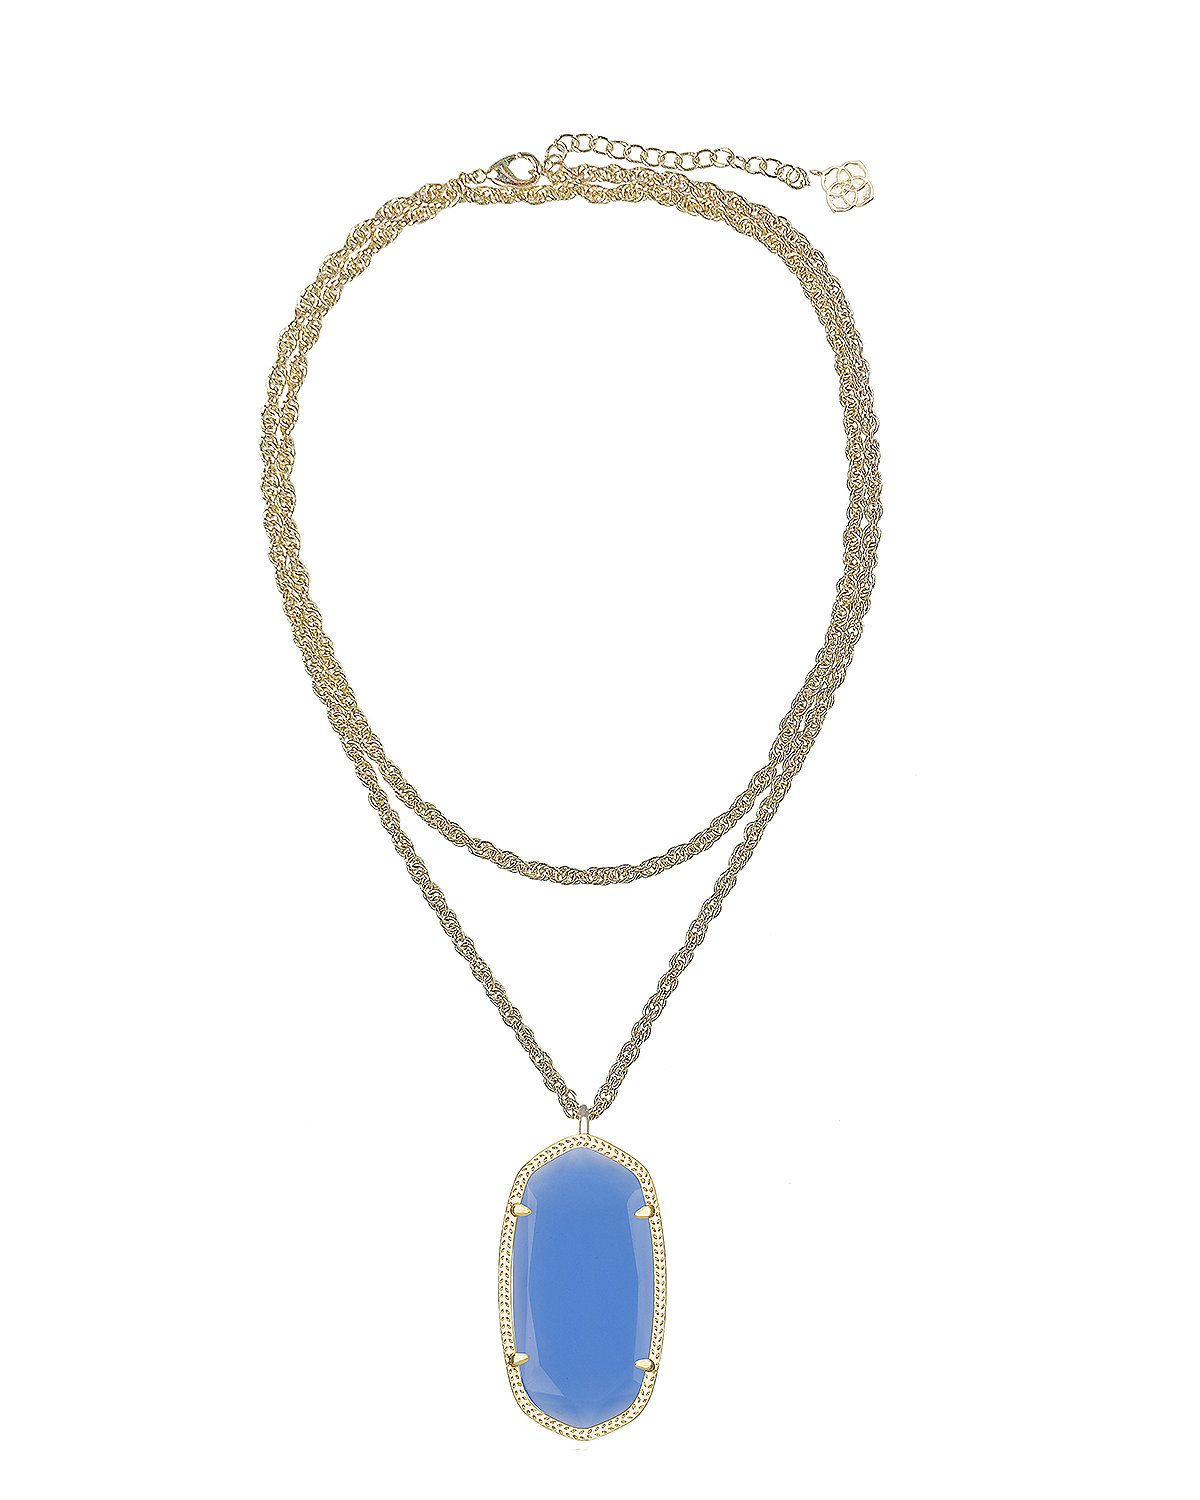 Rae pendant necklace by kendra scott at neiman marcus in iridescent